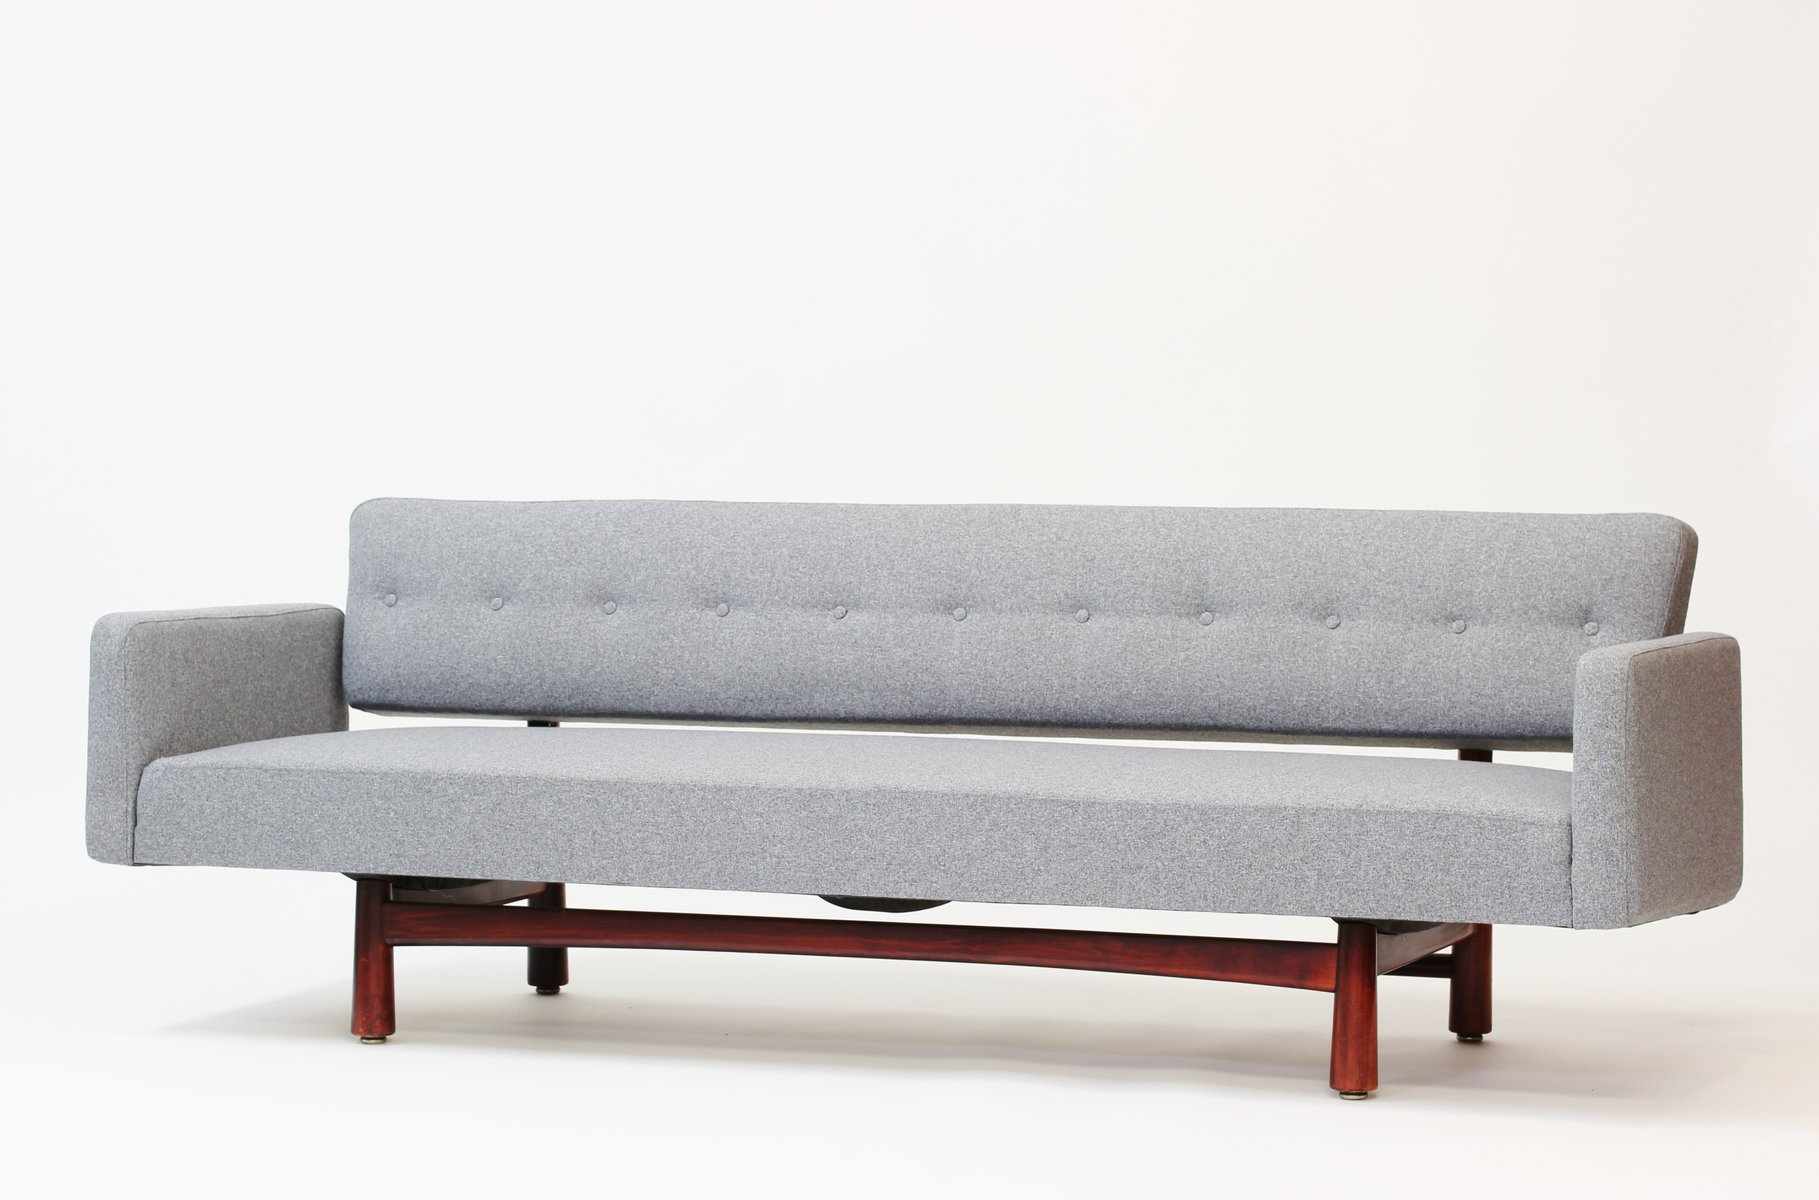 New York Sofa By Edward Wormley For Ljungs IndustrierDUX S - New sofa